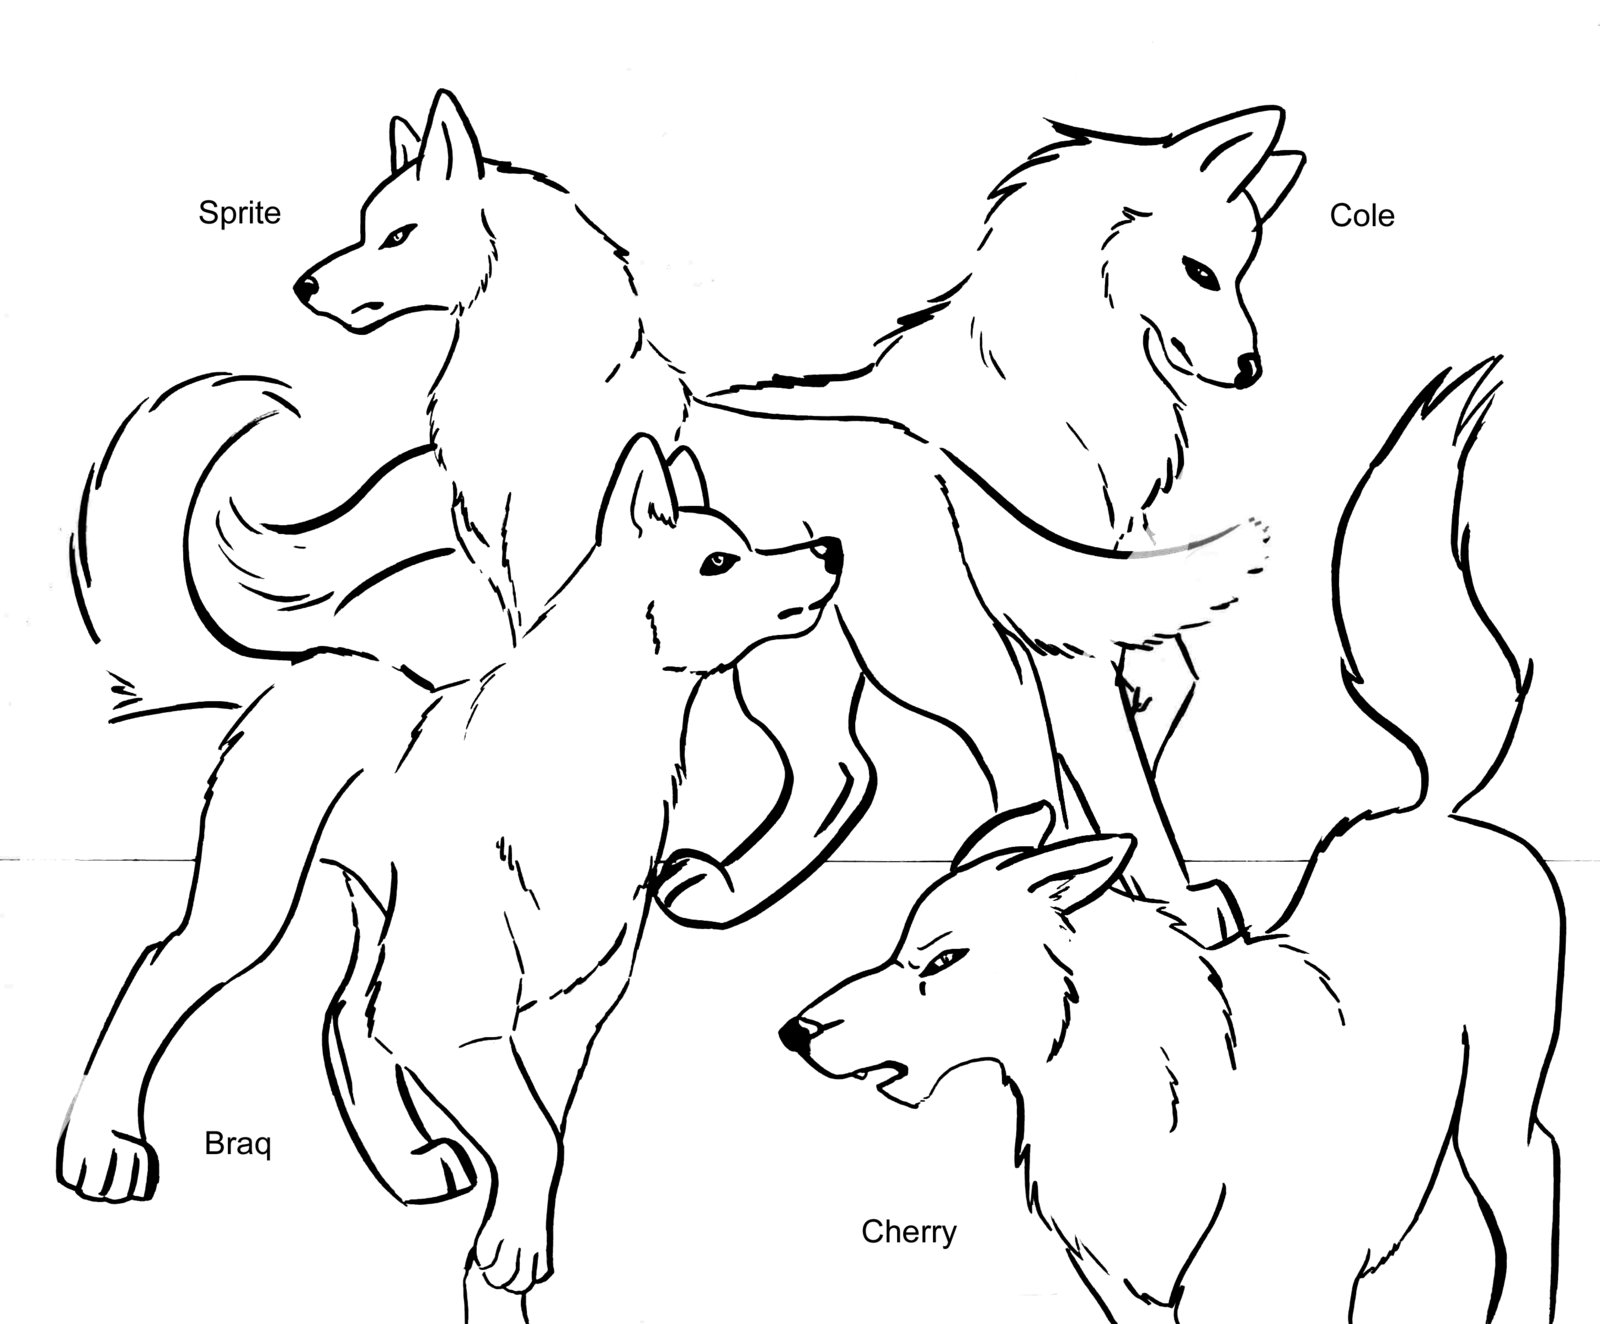 Coloring Pages The Boy Who Cried Wolf Fun Coloring Pages